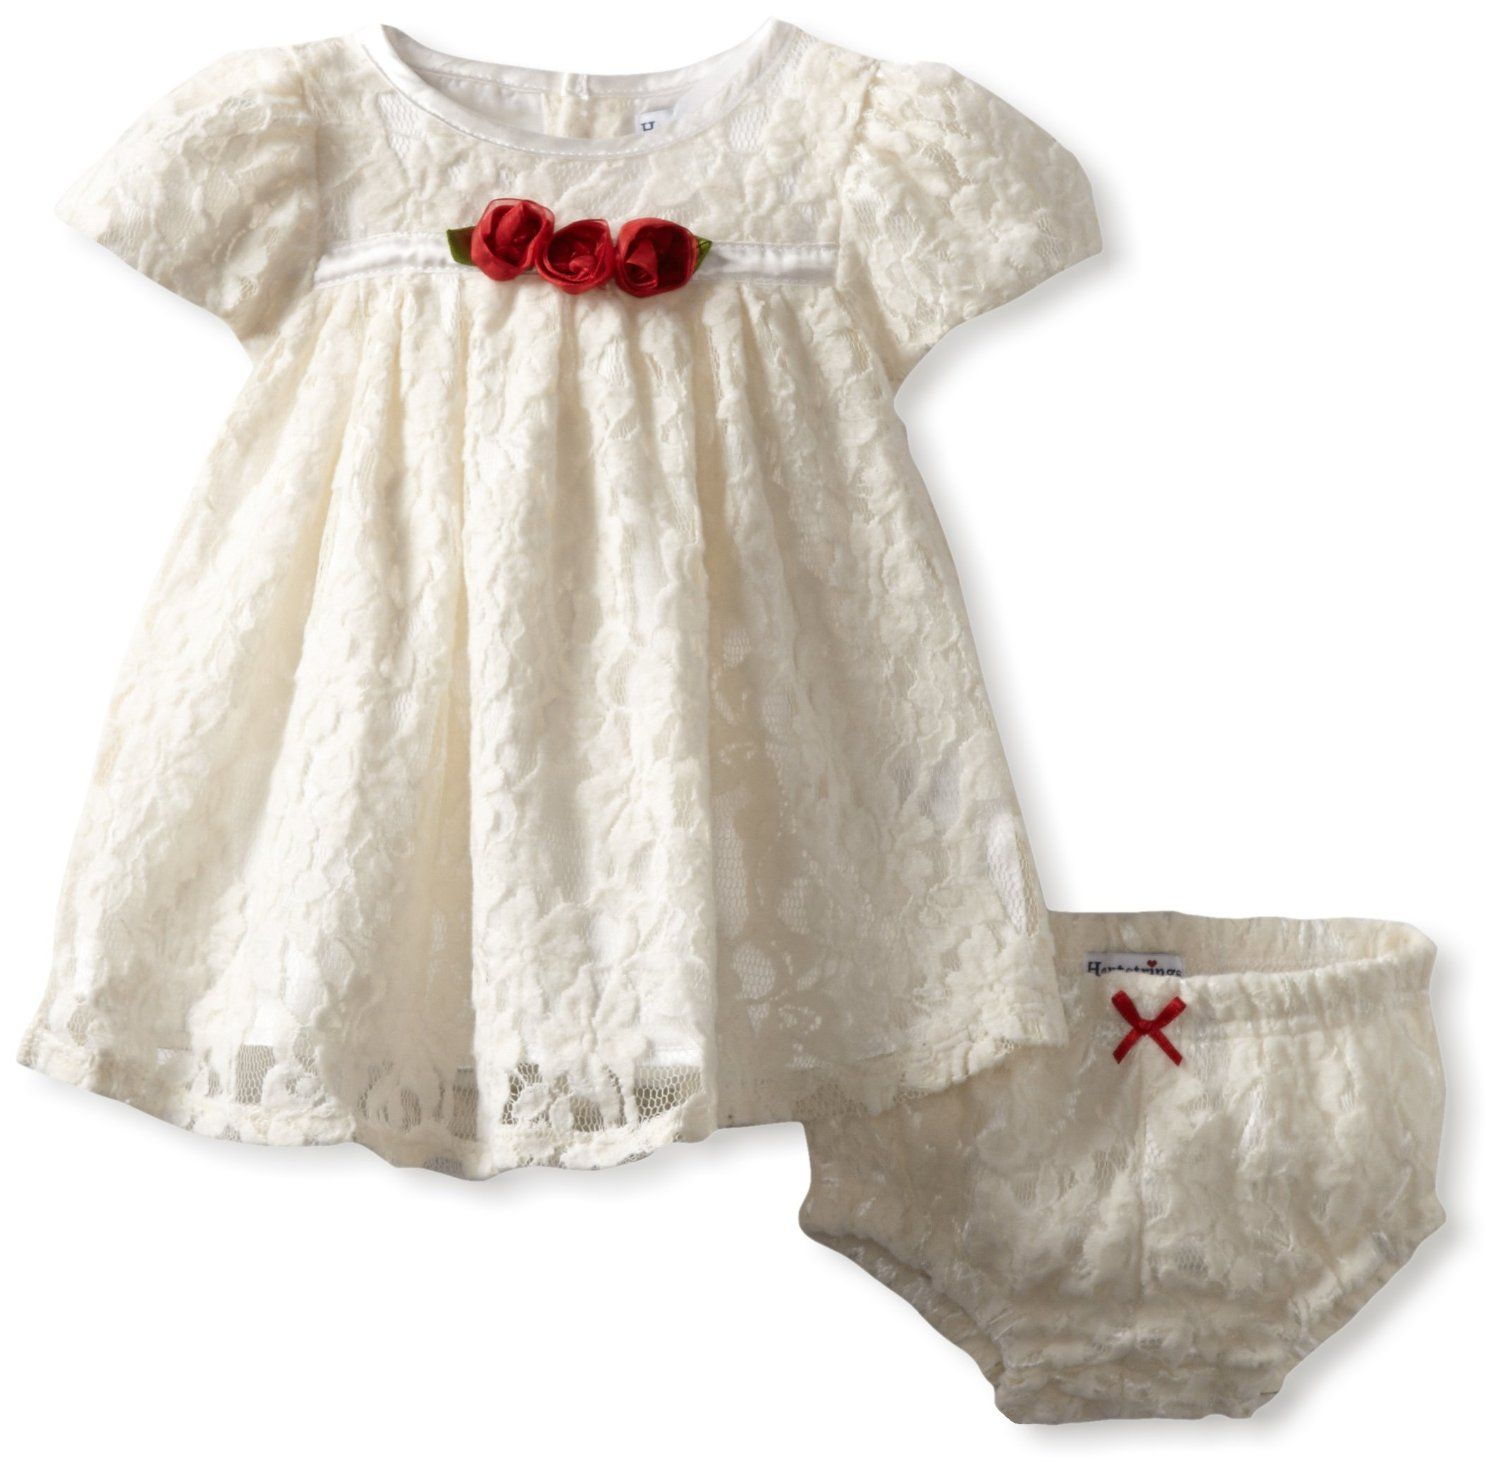 78  images about Dresses for Baby Girls on Pinterest - Baby ...